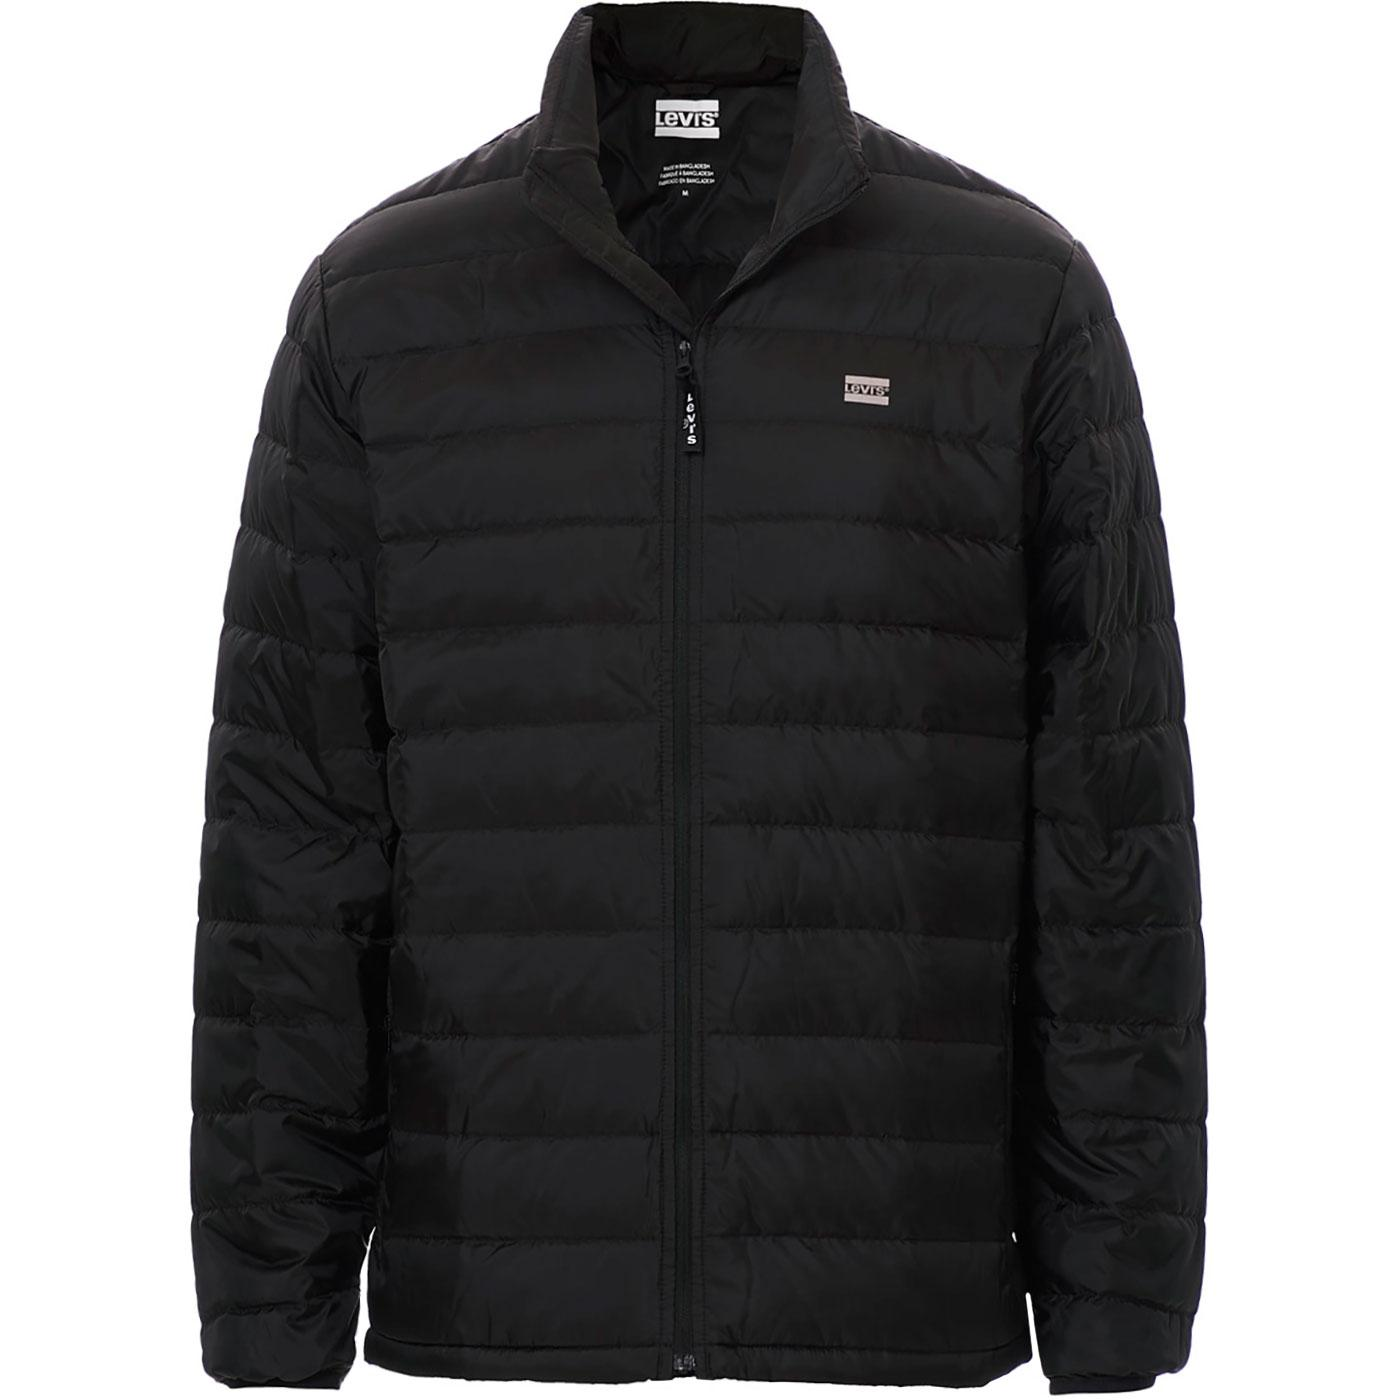 Presidio LEVI'S Retro Packable Quilted Jacket (B)